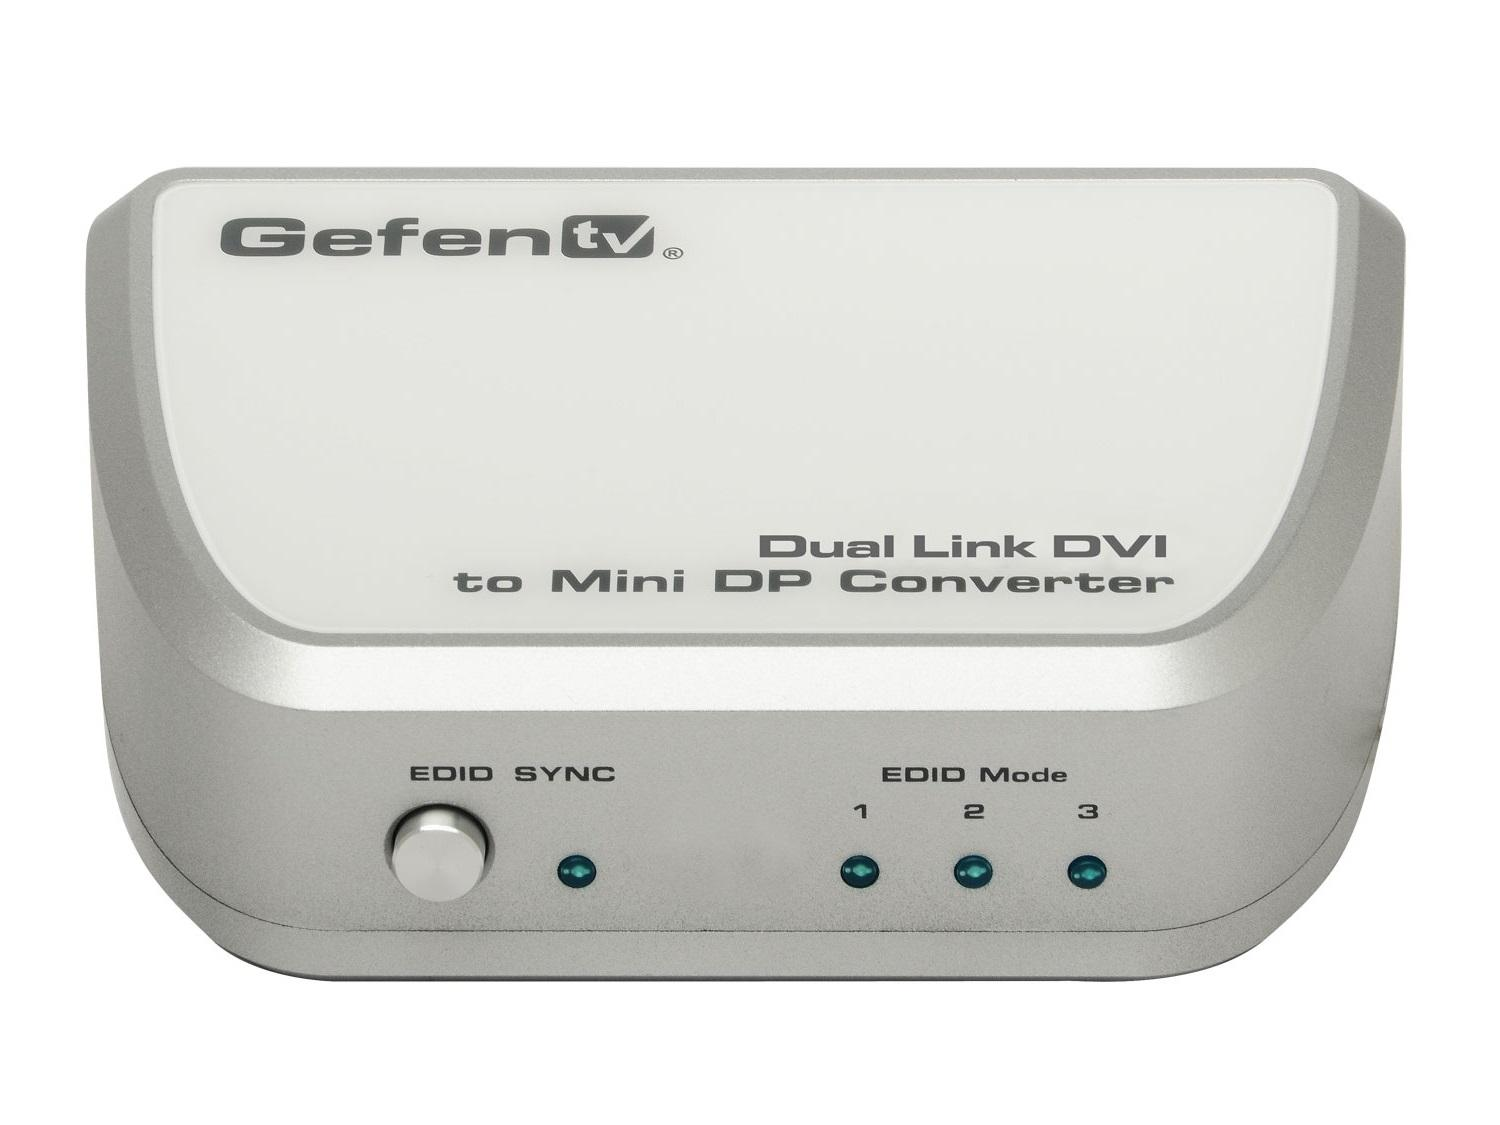 GTV-DVIDL-2-MDP Dual Link DVI to Mini Displayport Converter by Gefen